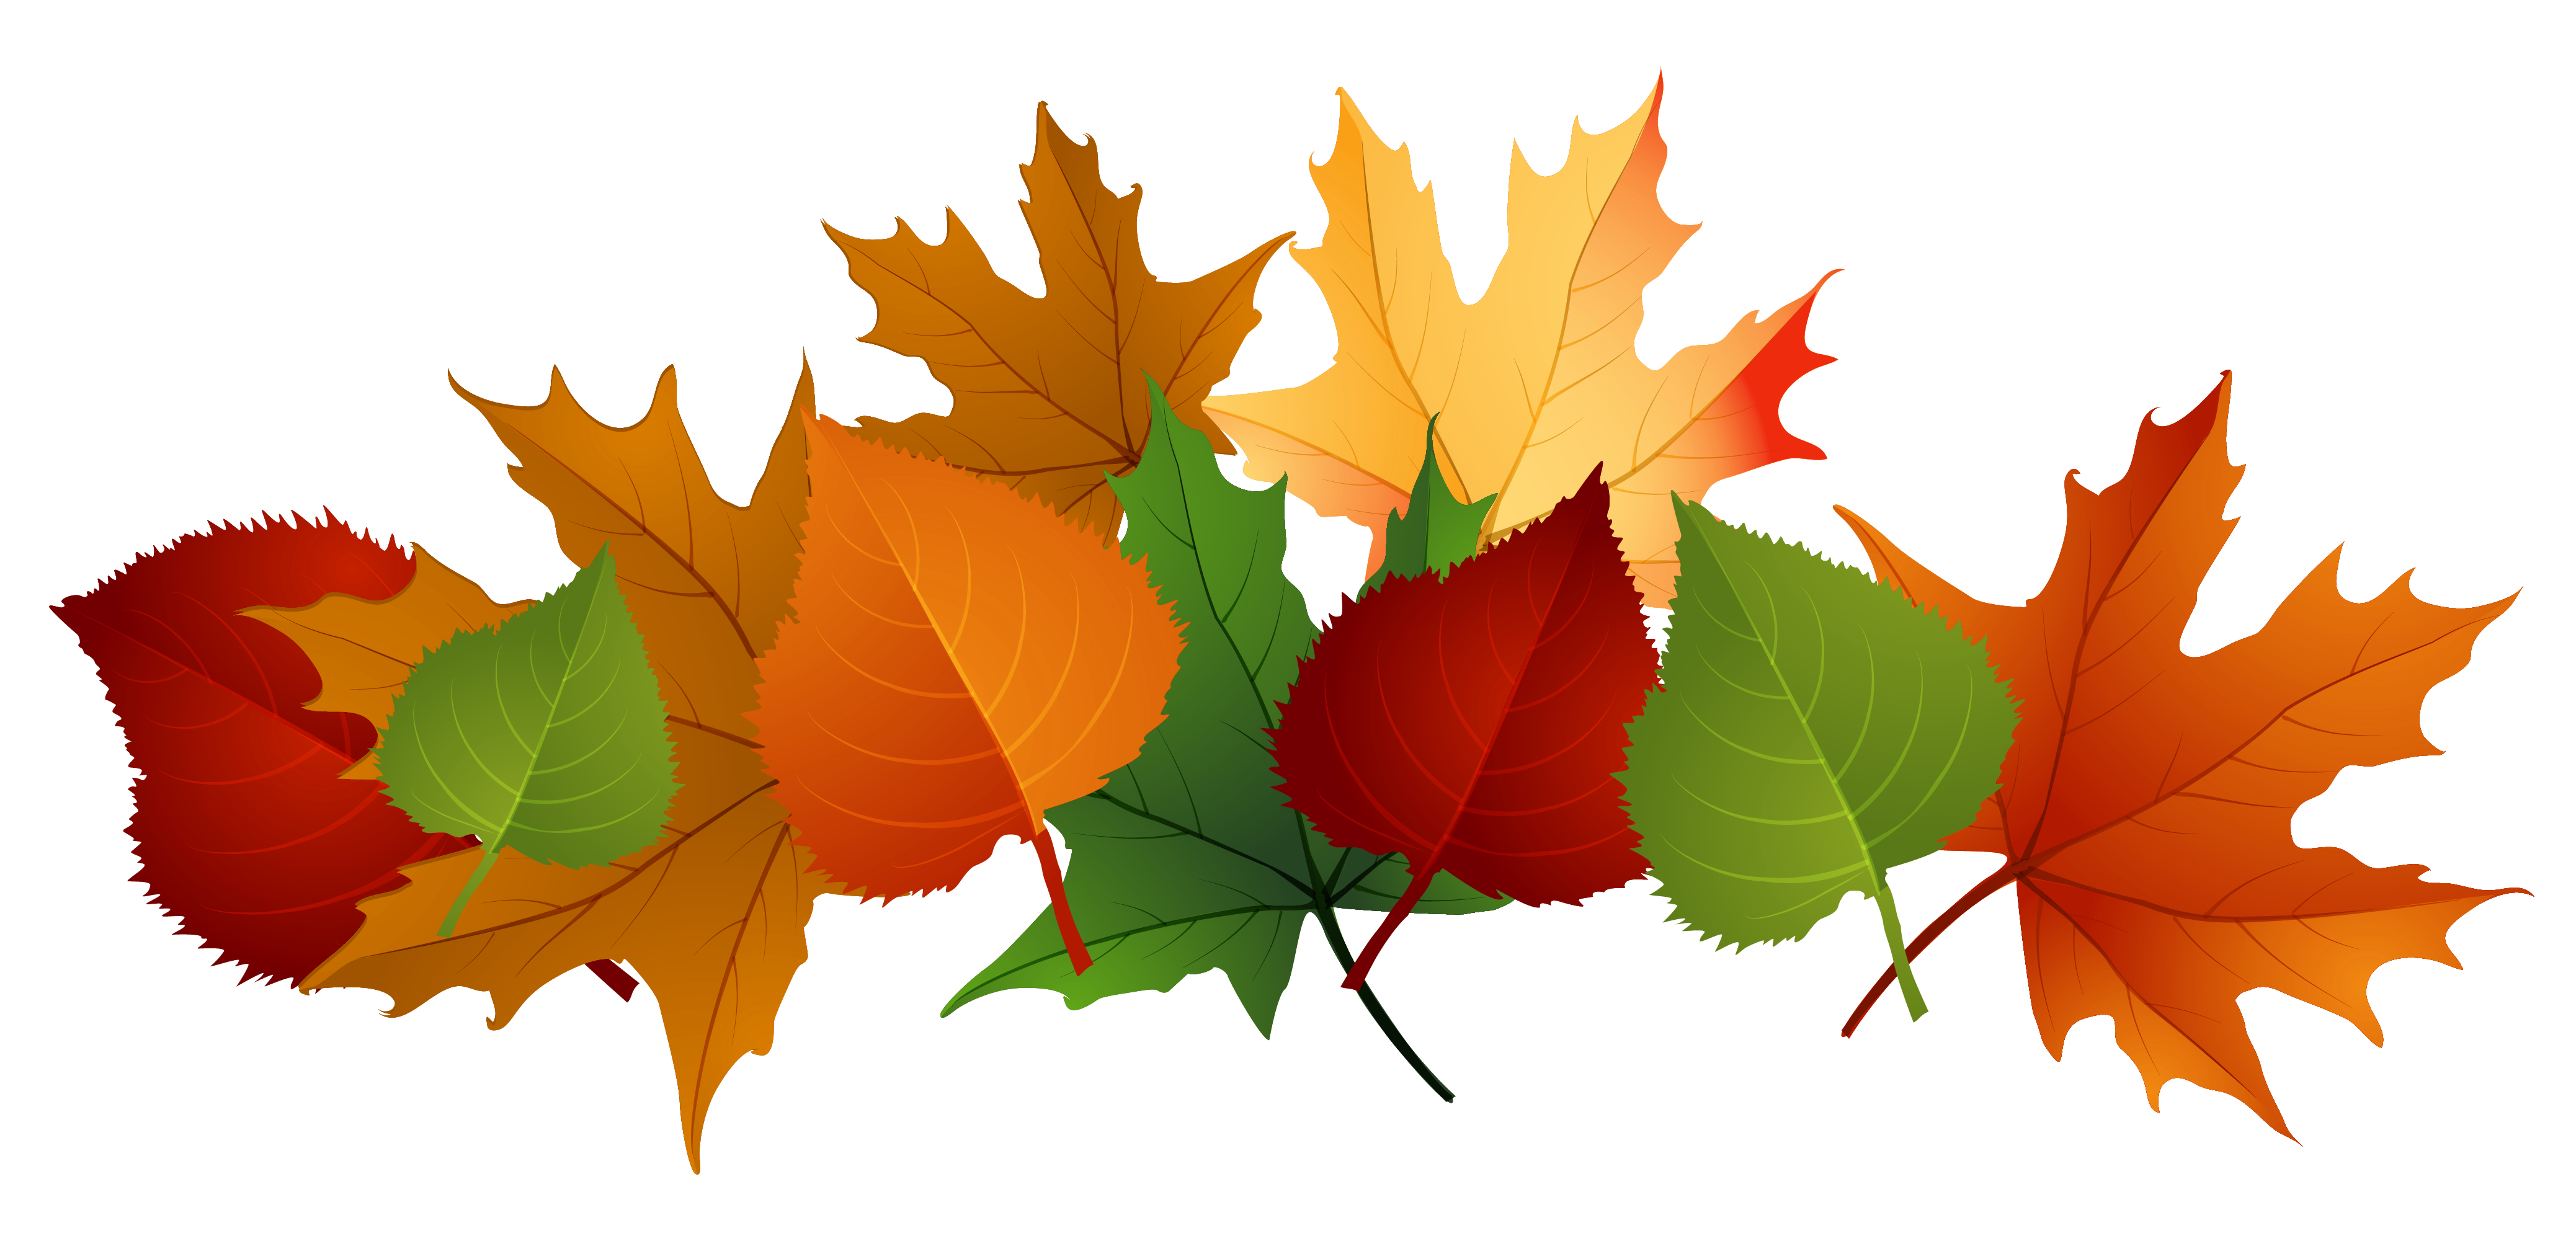 Free clipart autumn leaves with musical notes